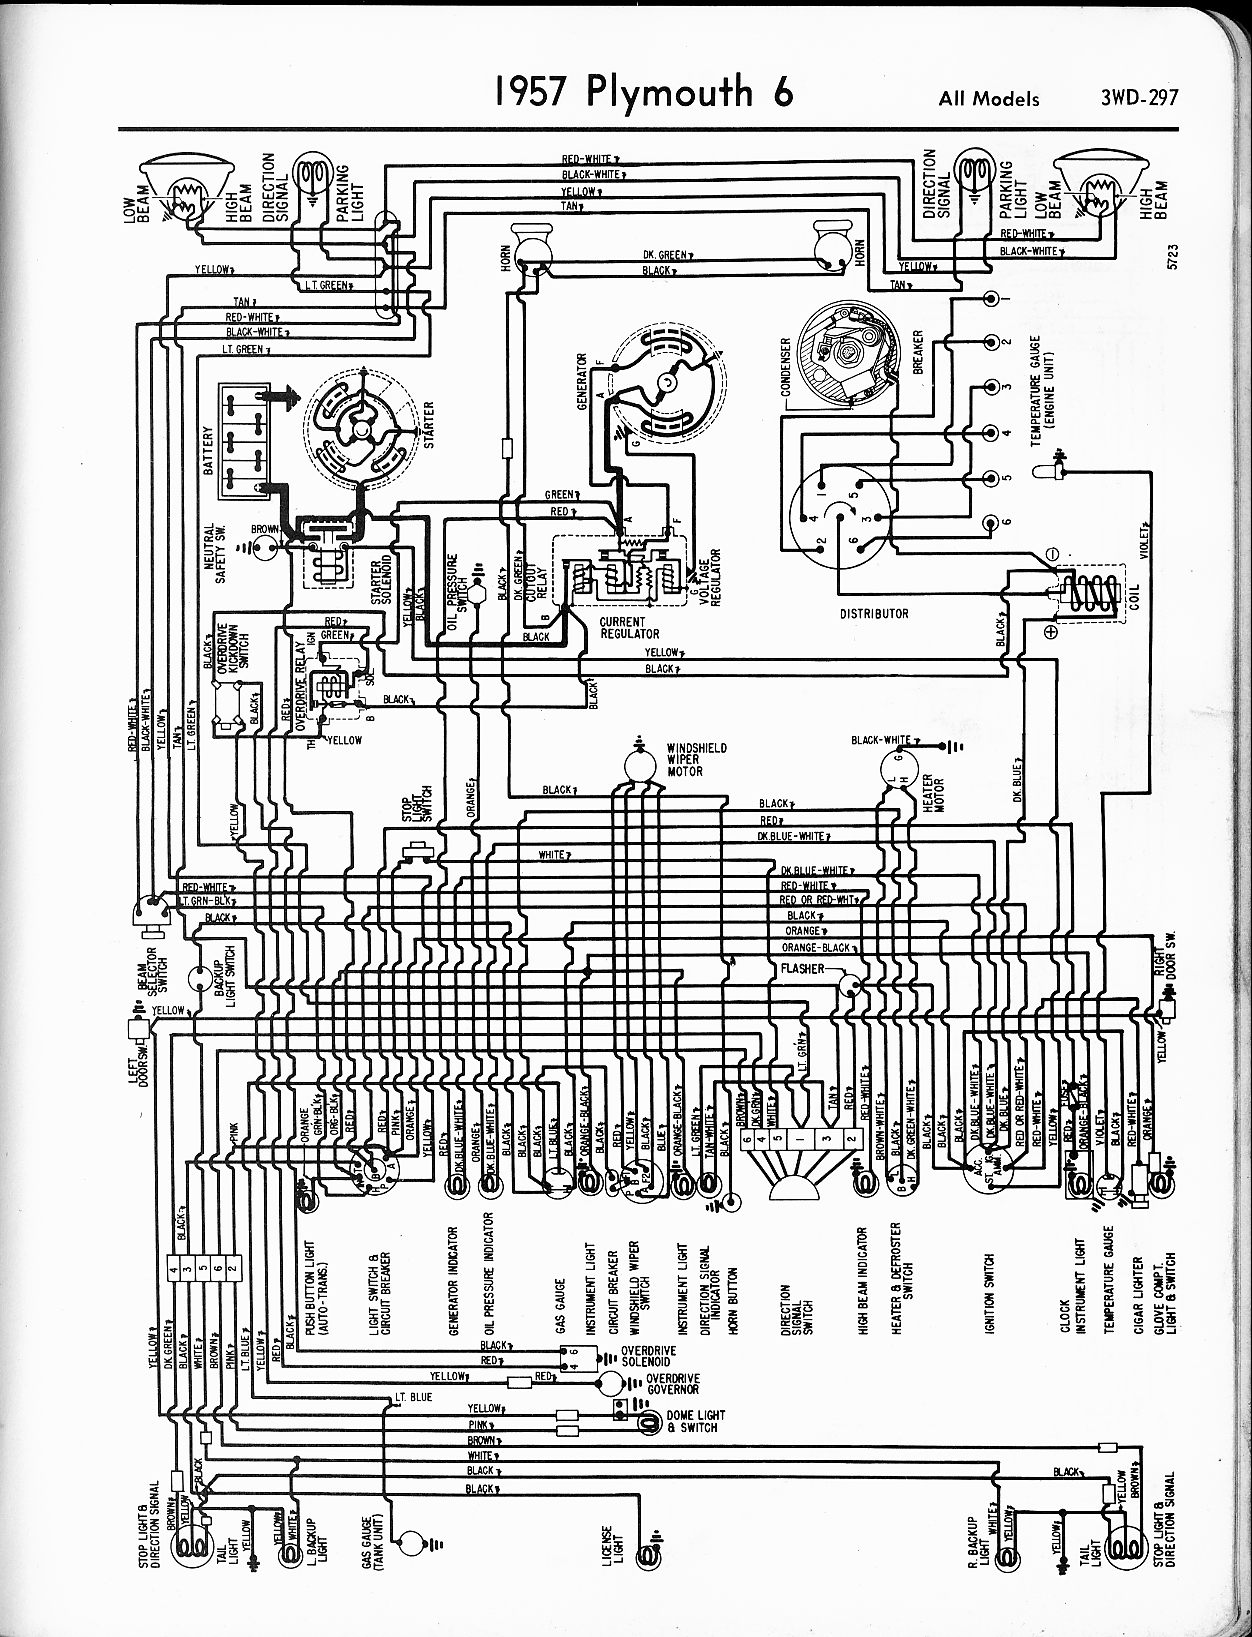 1956 1965 plymouth wiring the old car manual project  electrical diagrams for chrysler, dodge